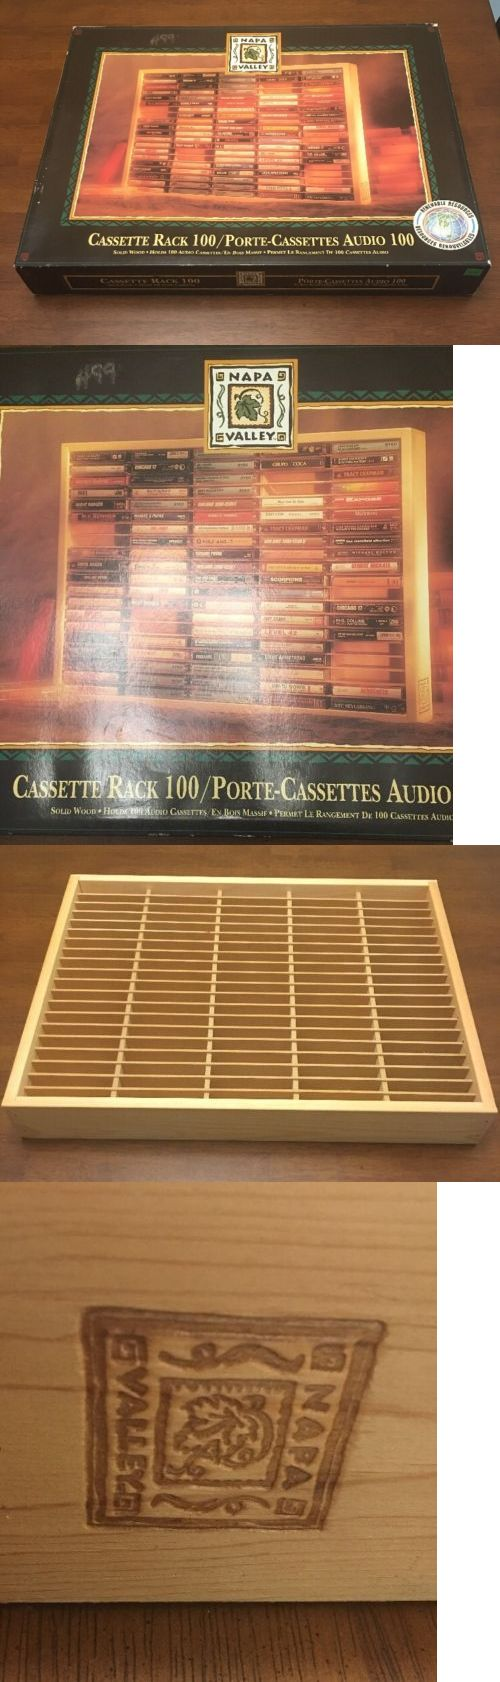 Media Cases and Storage: Vintage 1989 Napa Valley Box 100 Cassette Tape Rack New Tower Records New! -> BUY IT NOW ONLY: $49.99 on eBay!